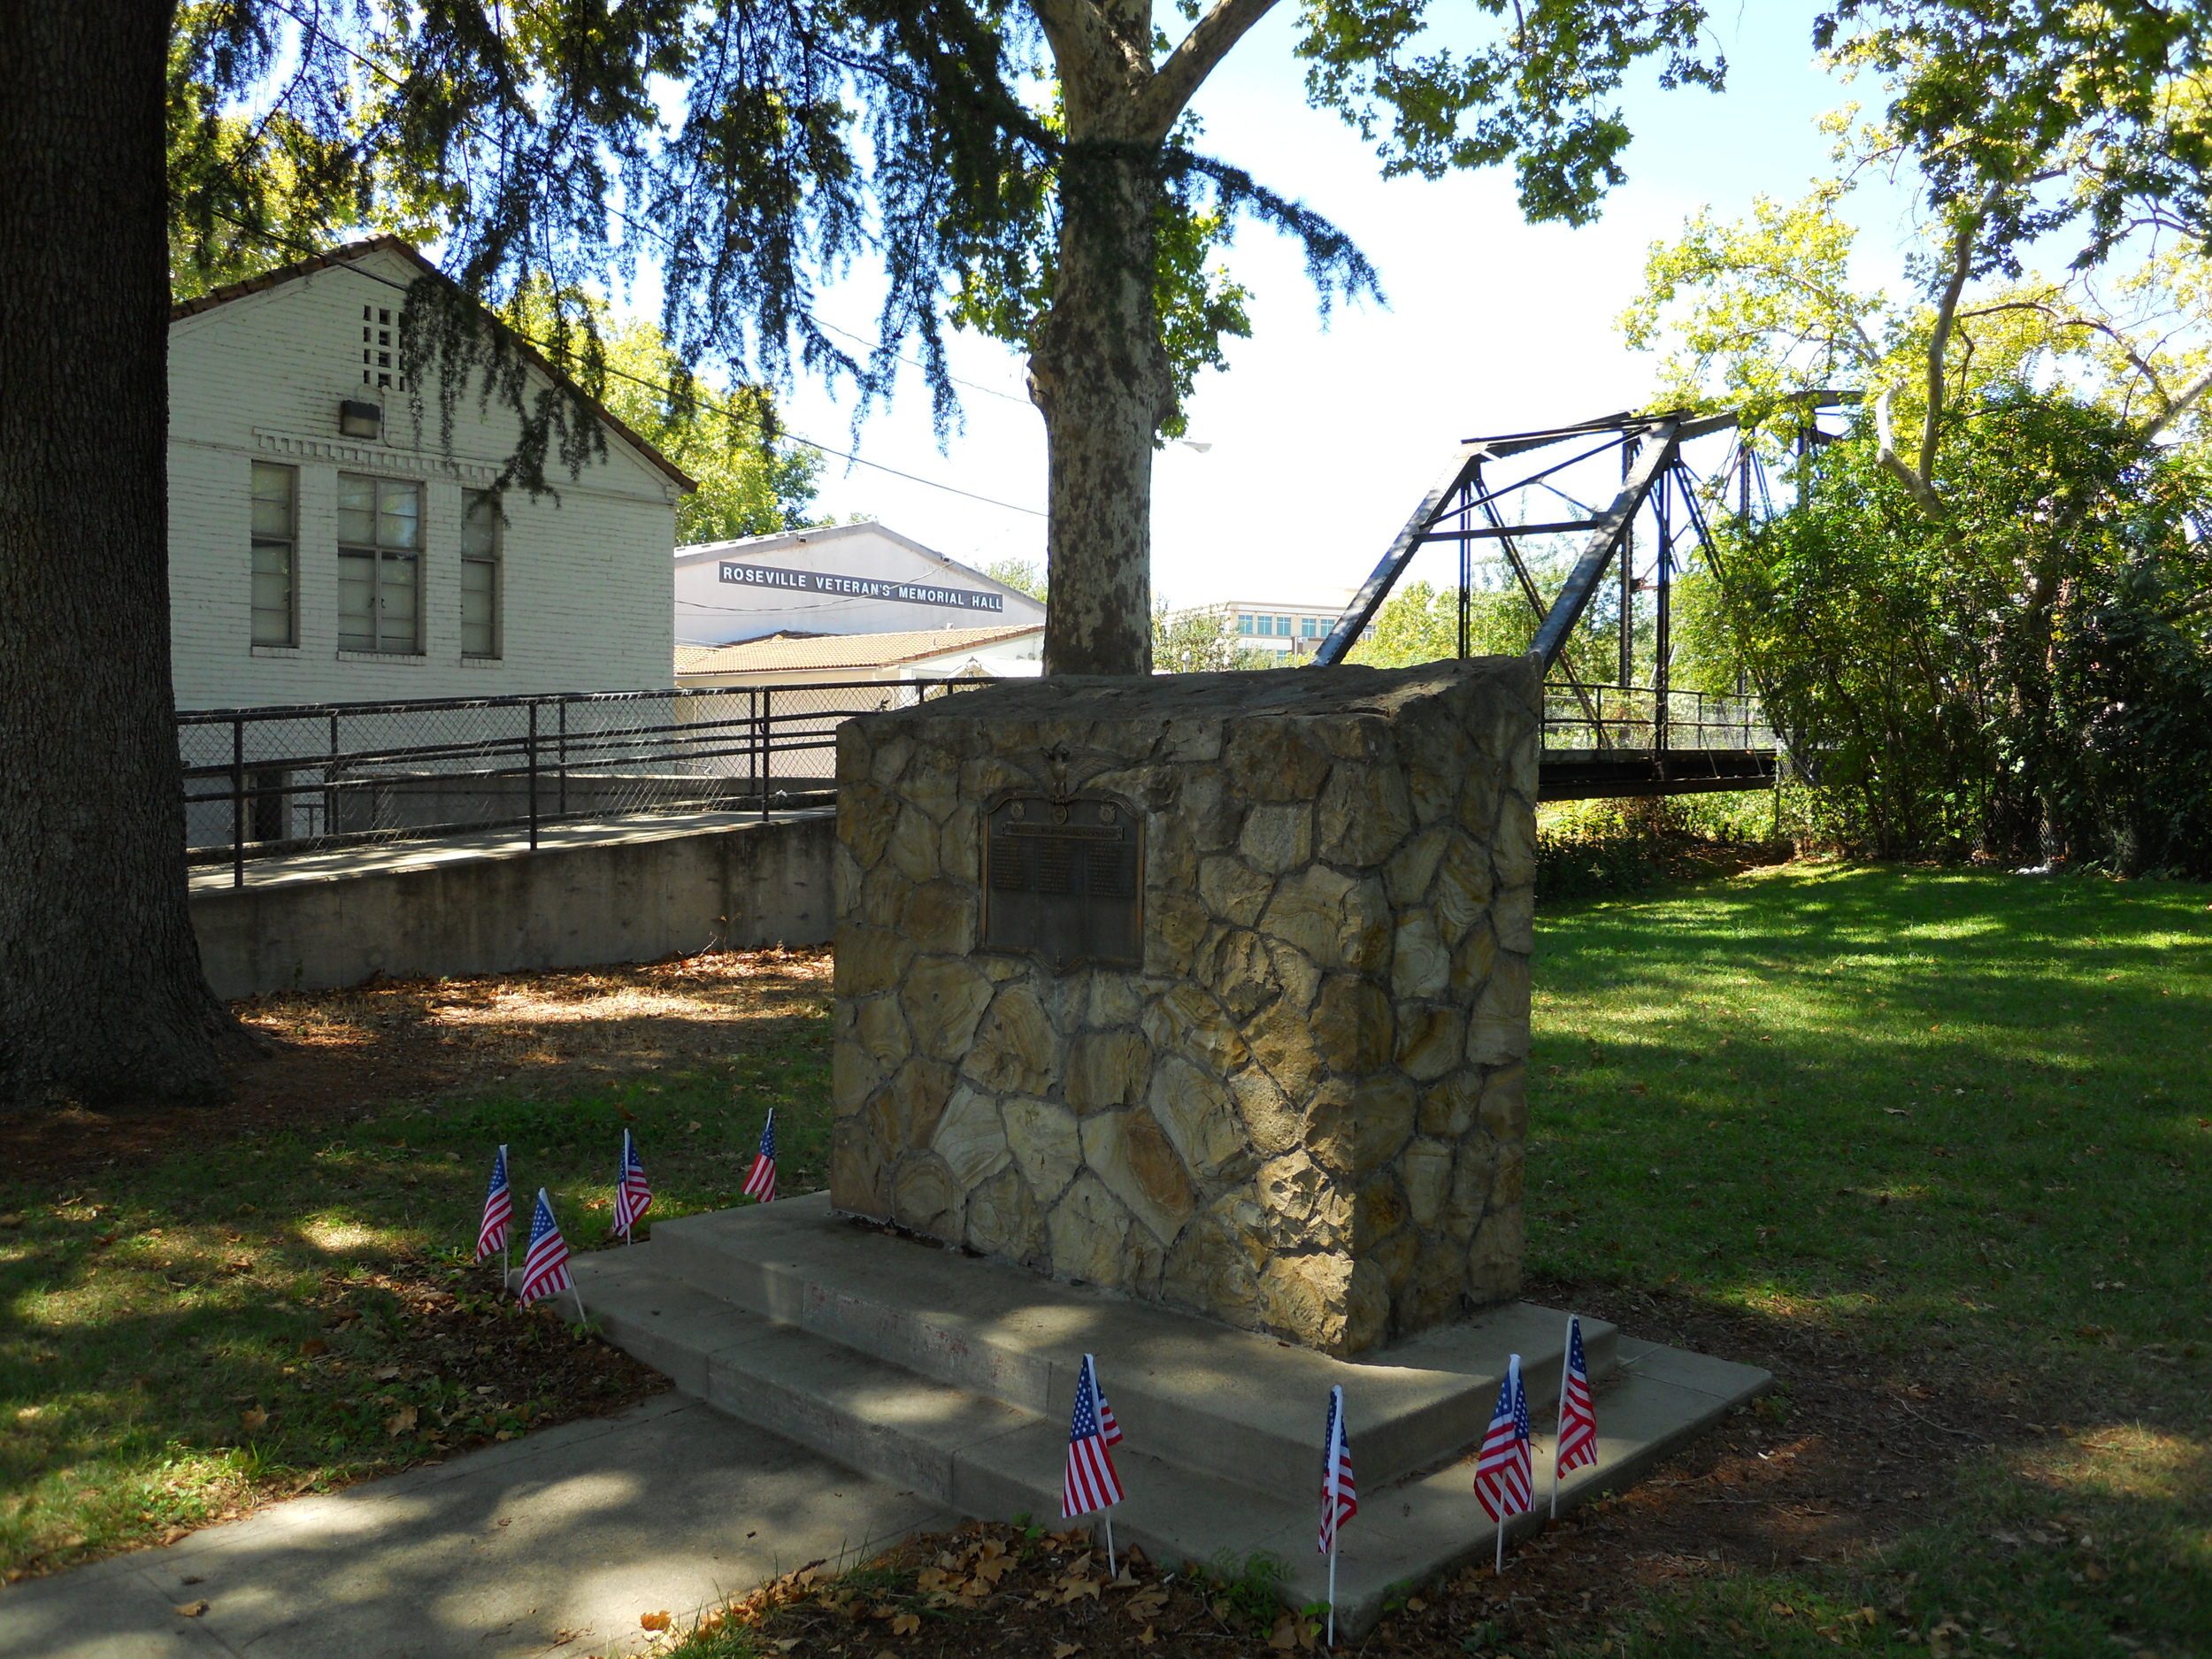 Notice the PFE footbridge, another point of historical interest, behind the monument. The bridge once crossed over the railroad tracks but today it crosses Dry Creek, connecting Royer Park to Oak Street.